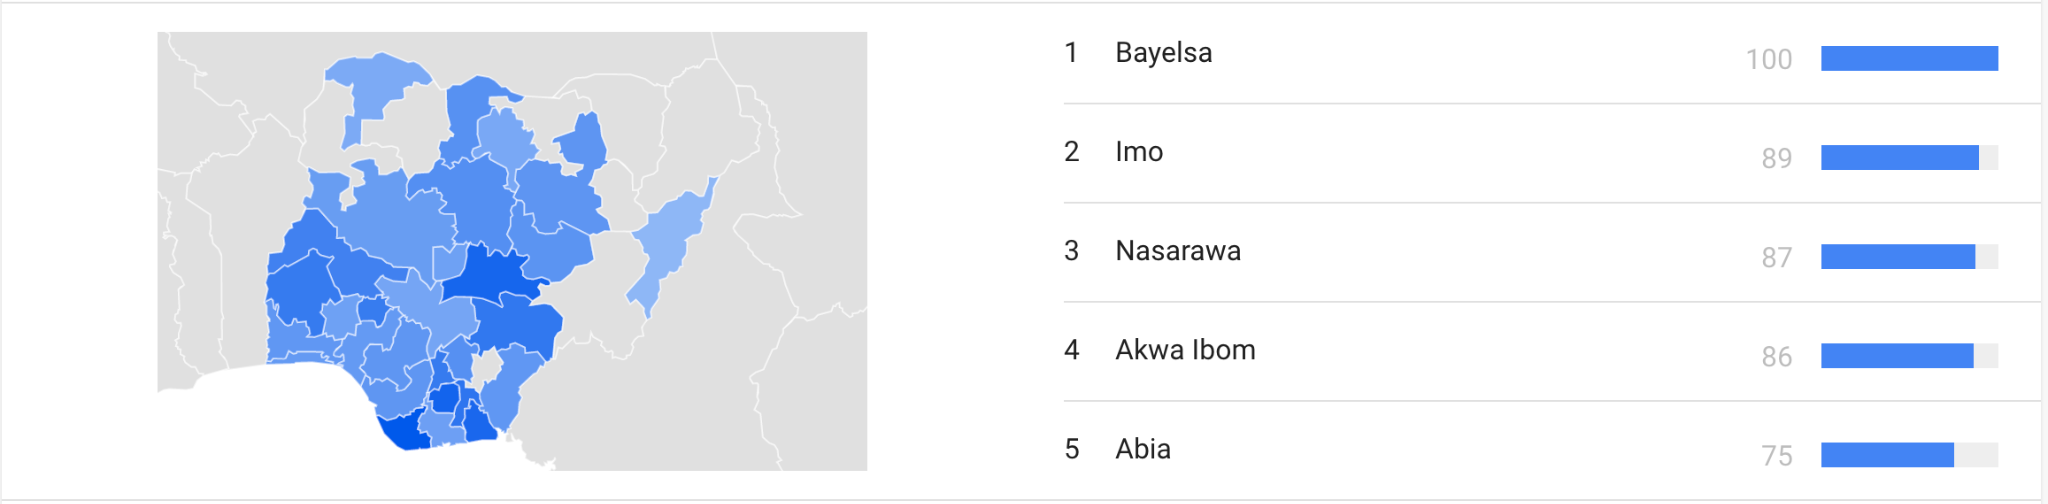 map showing the top state in Nigeria searching for beauty